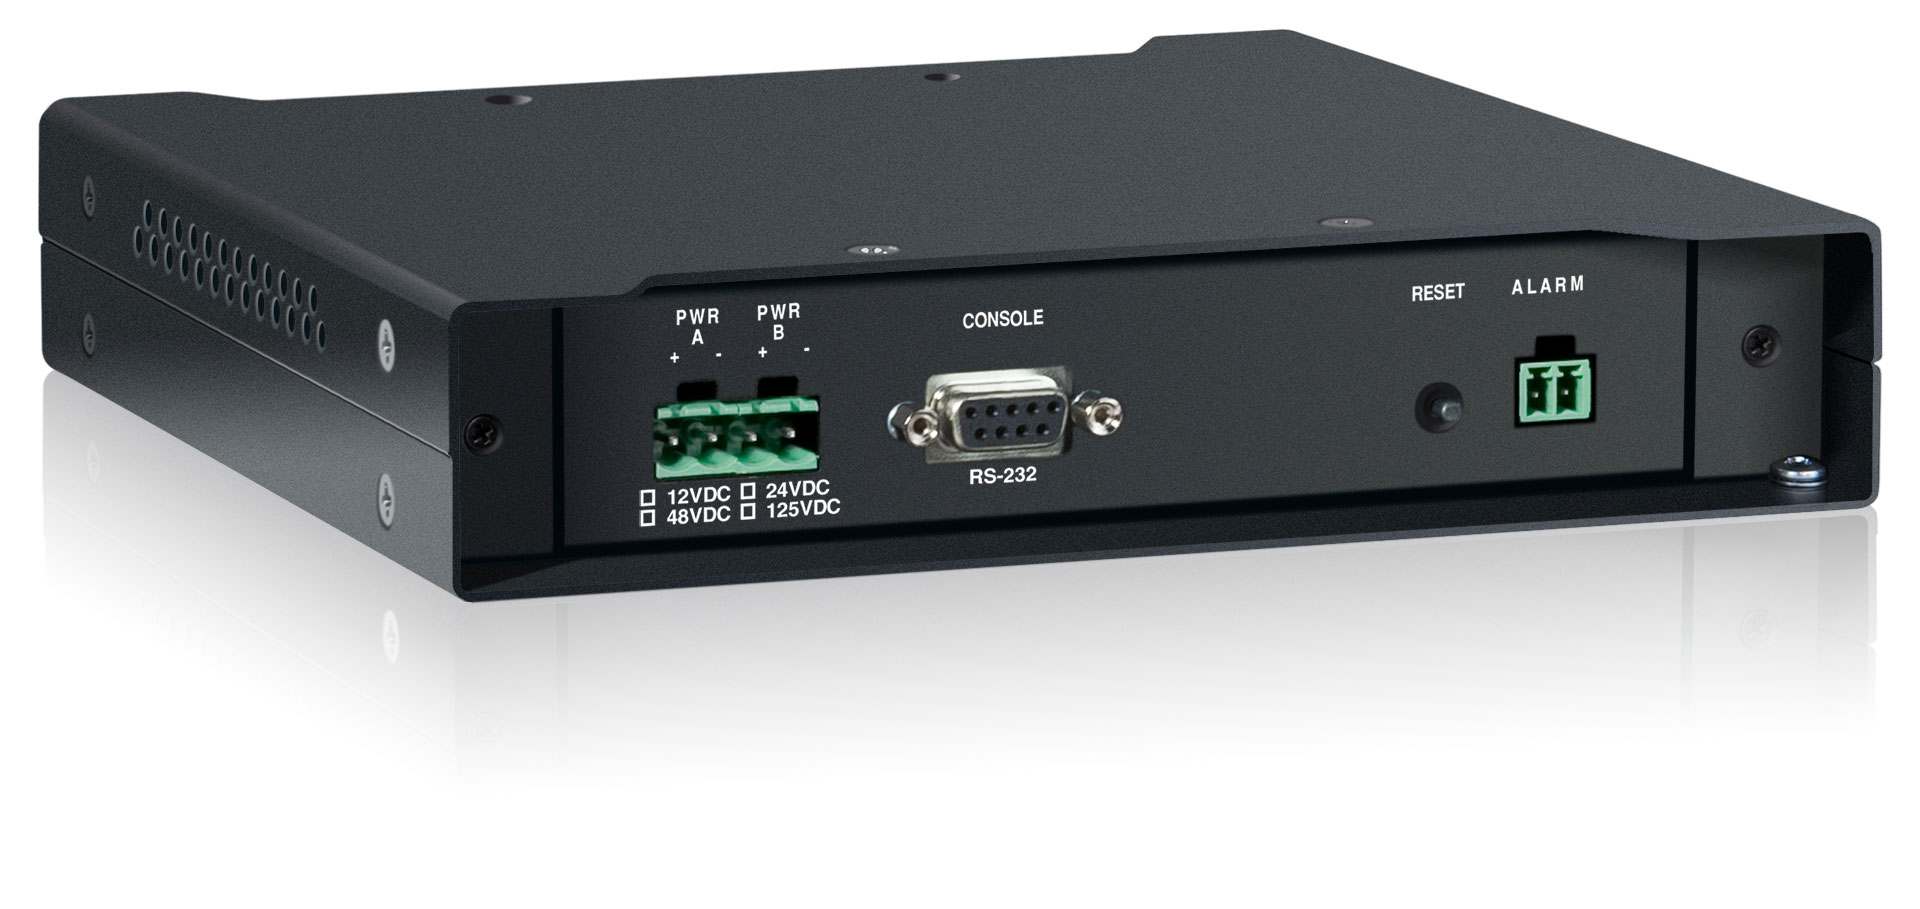 3 Port Fiber Optic Ethernet Media Converter Switch Tc3240 Tc Diagram For Further Cable Front View Back Chassis Options 10 100base Tx To